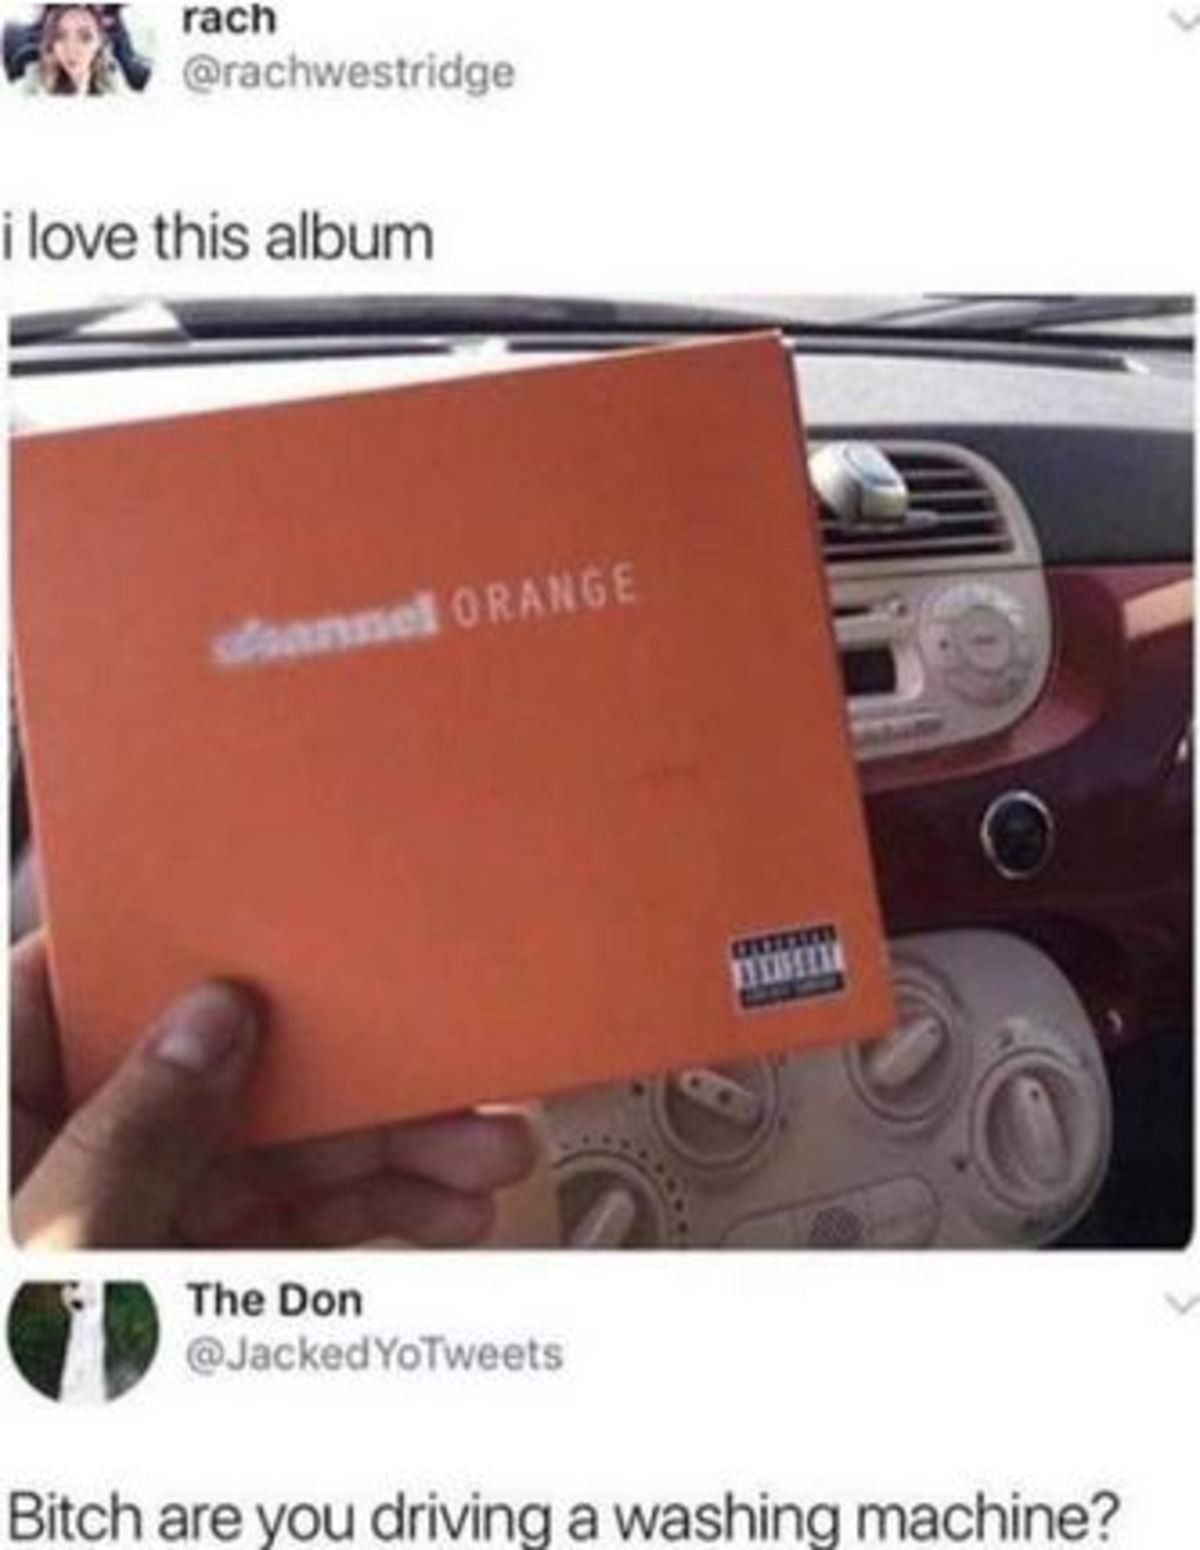 what album is this?